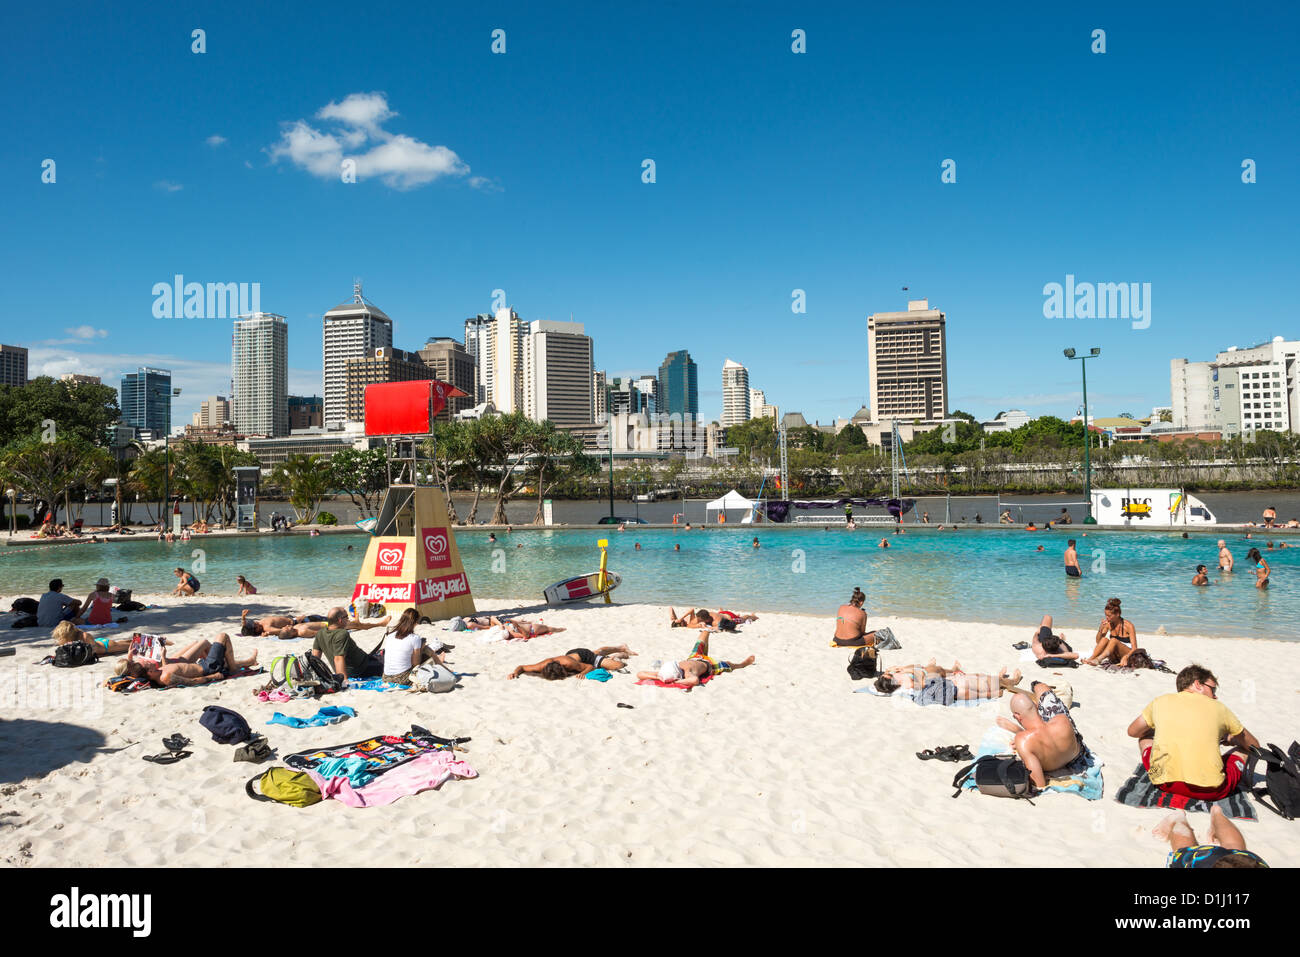 The artificial beach at South Bank across the Brisbane River from the CBD of Brisbane, the Queensland capital. - Stock Image